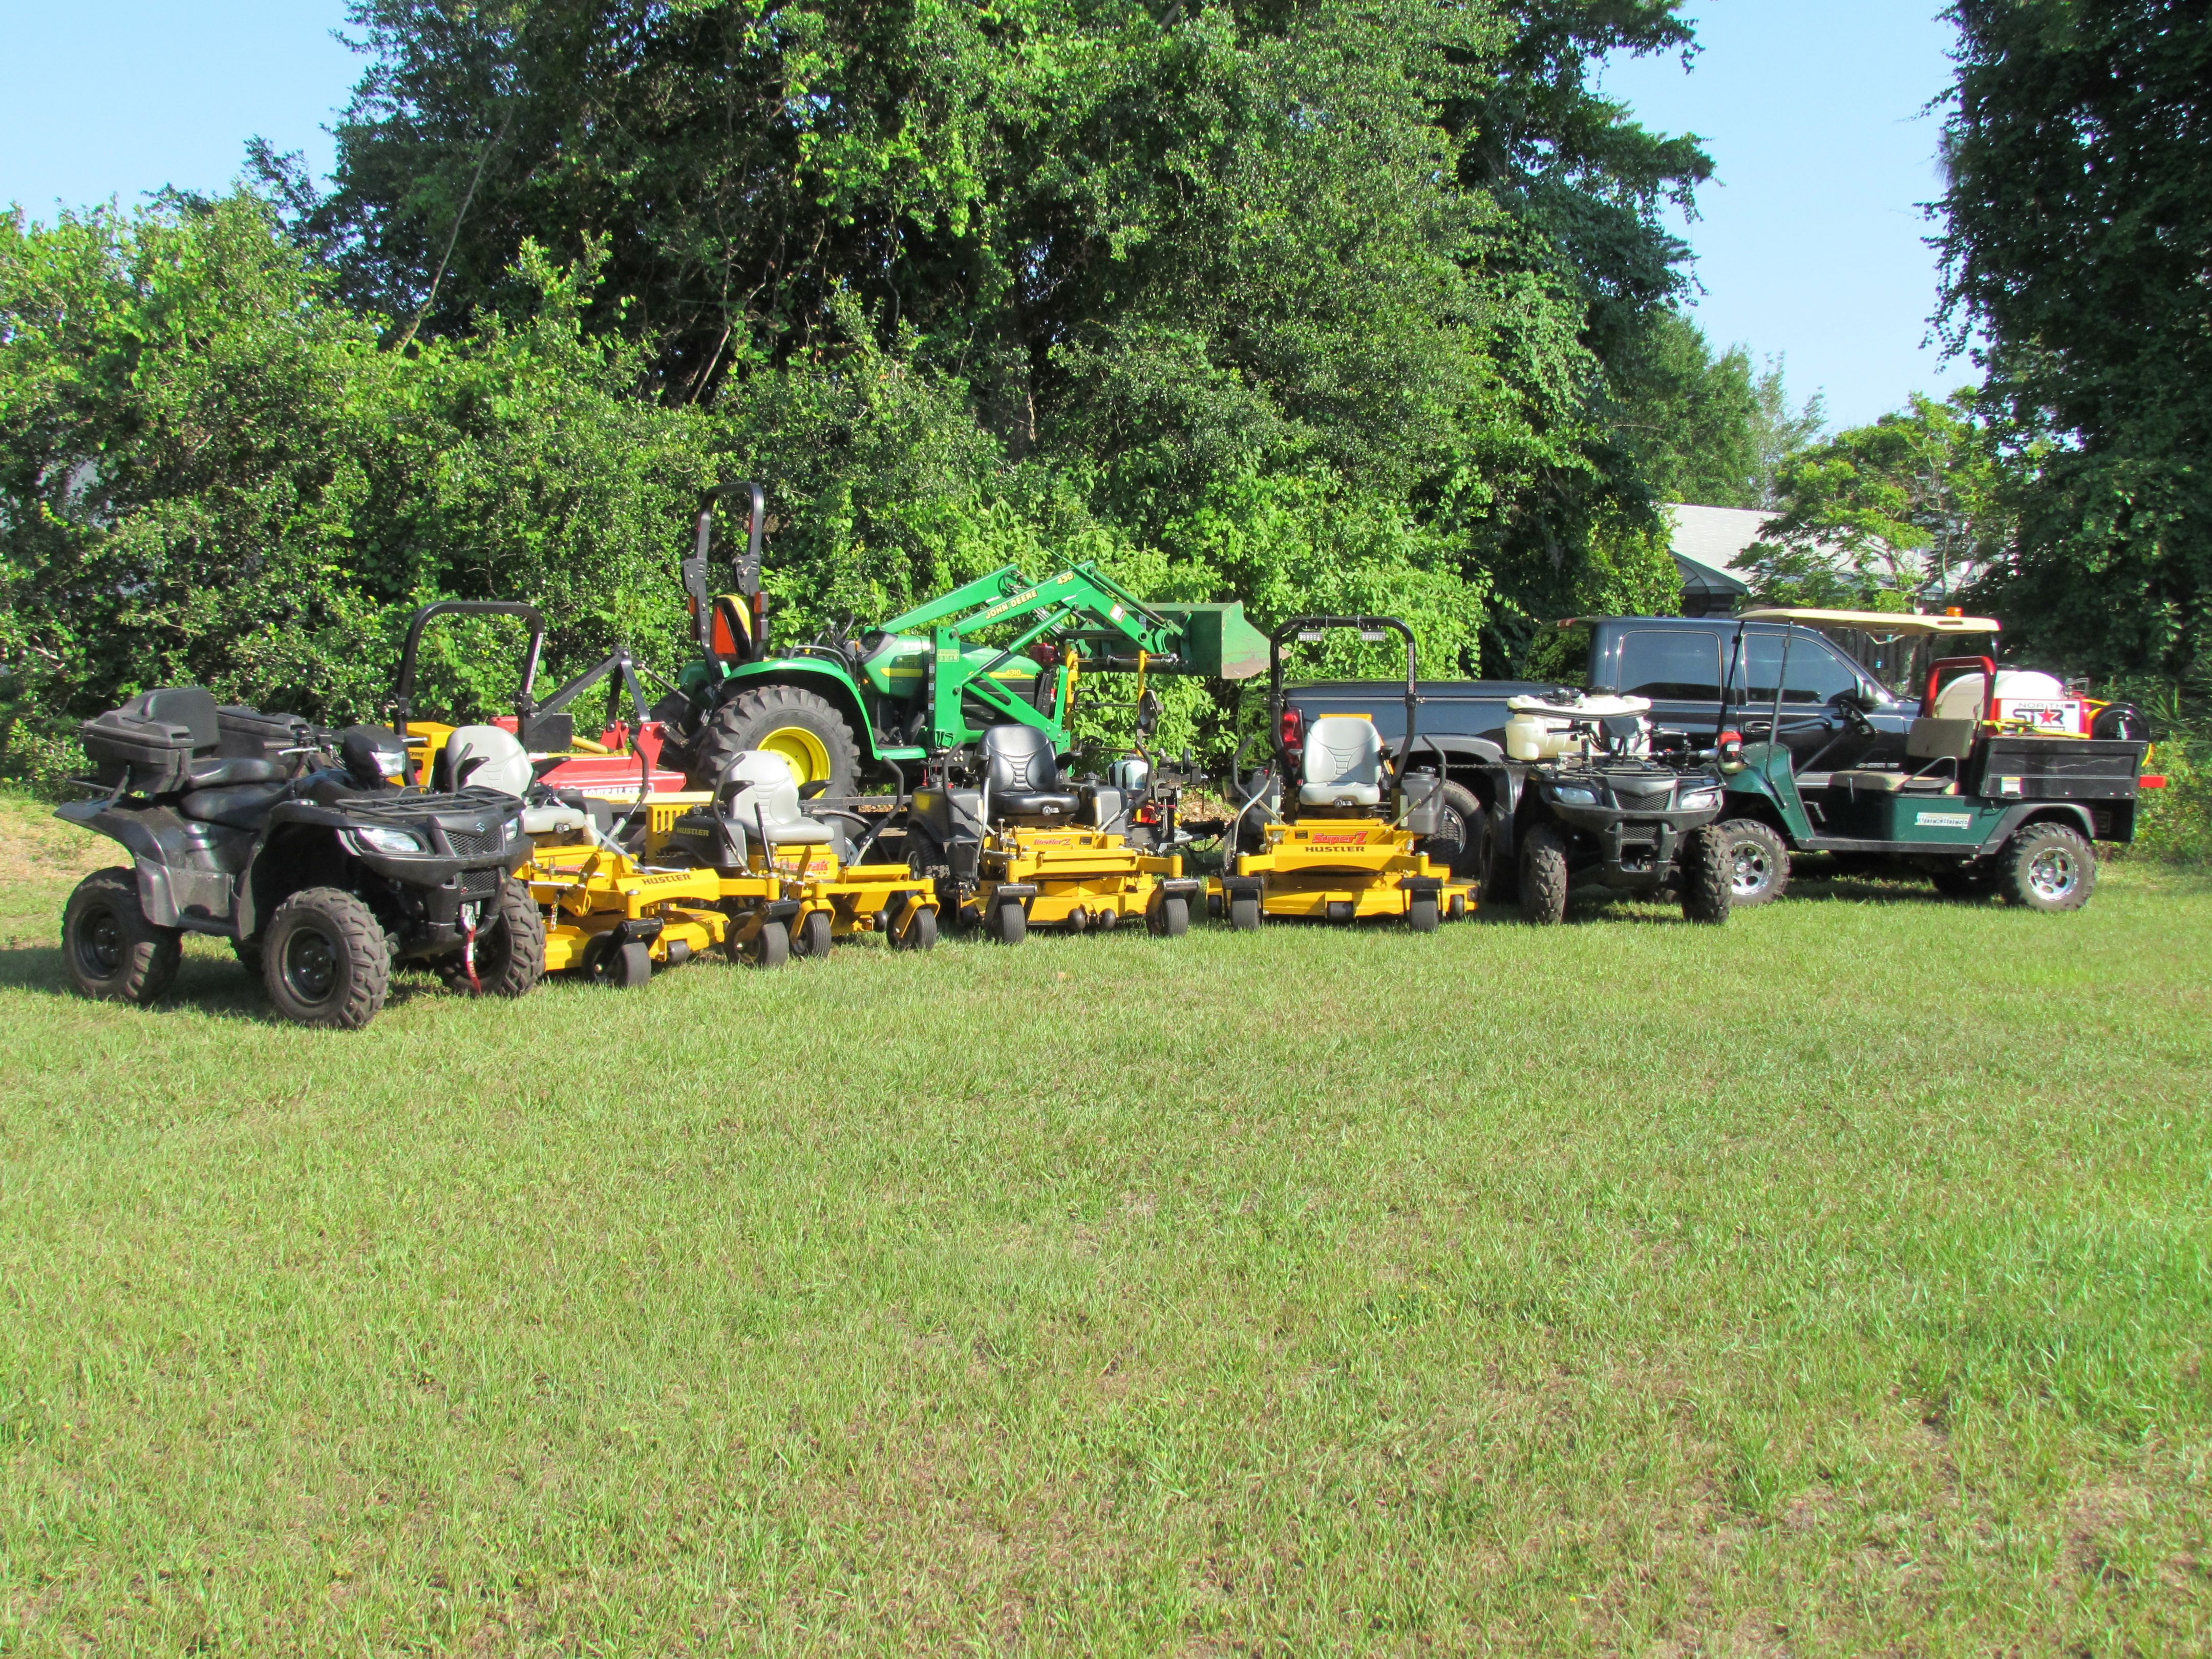 best images about lawn care landscaping lawn 17 best images about lawn care landscaping lawn service tractors and flyers